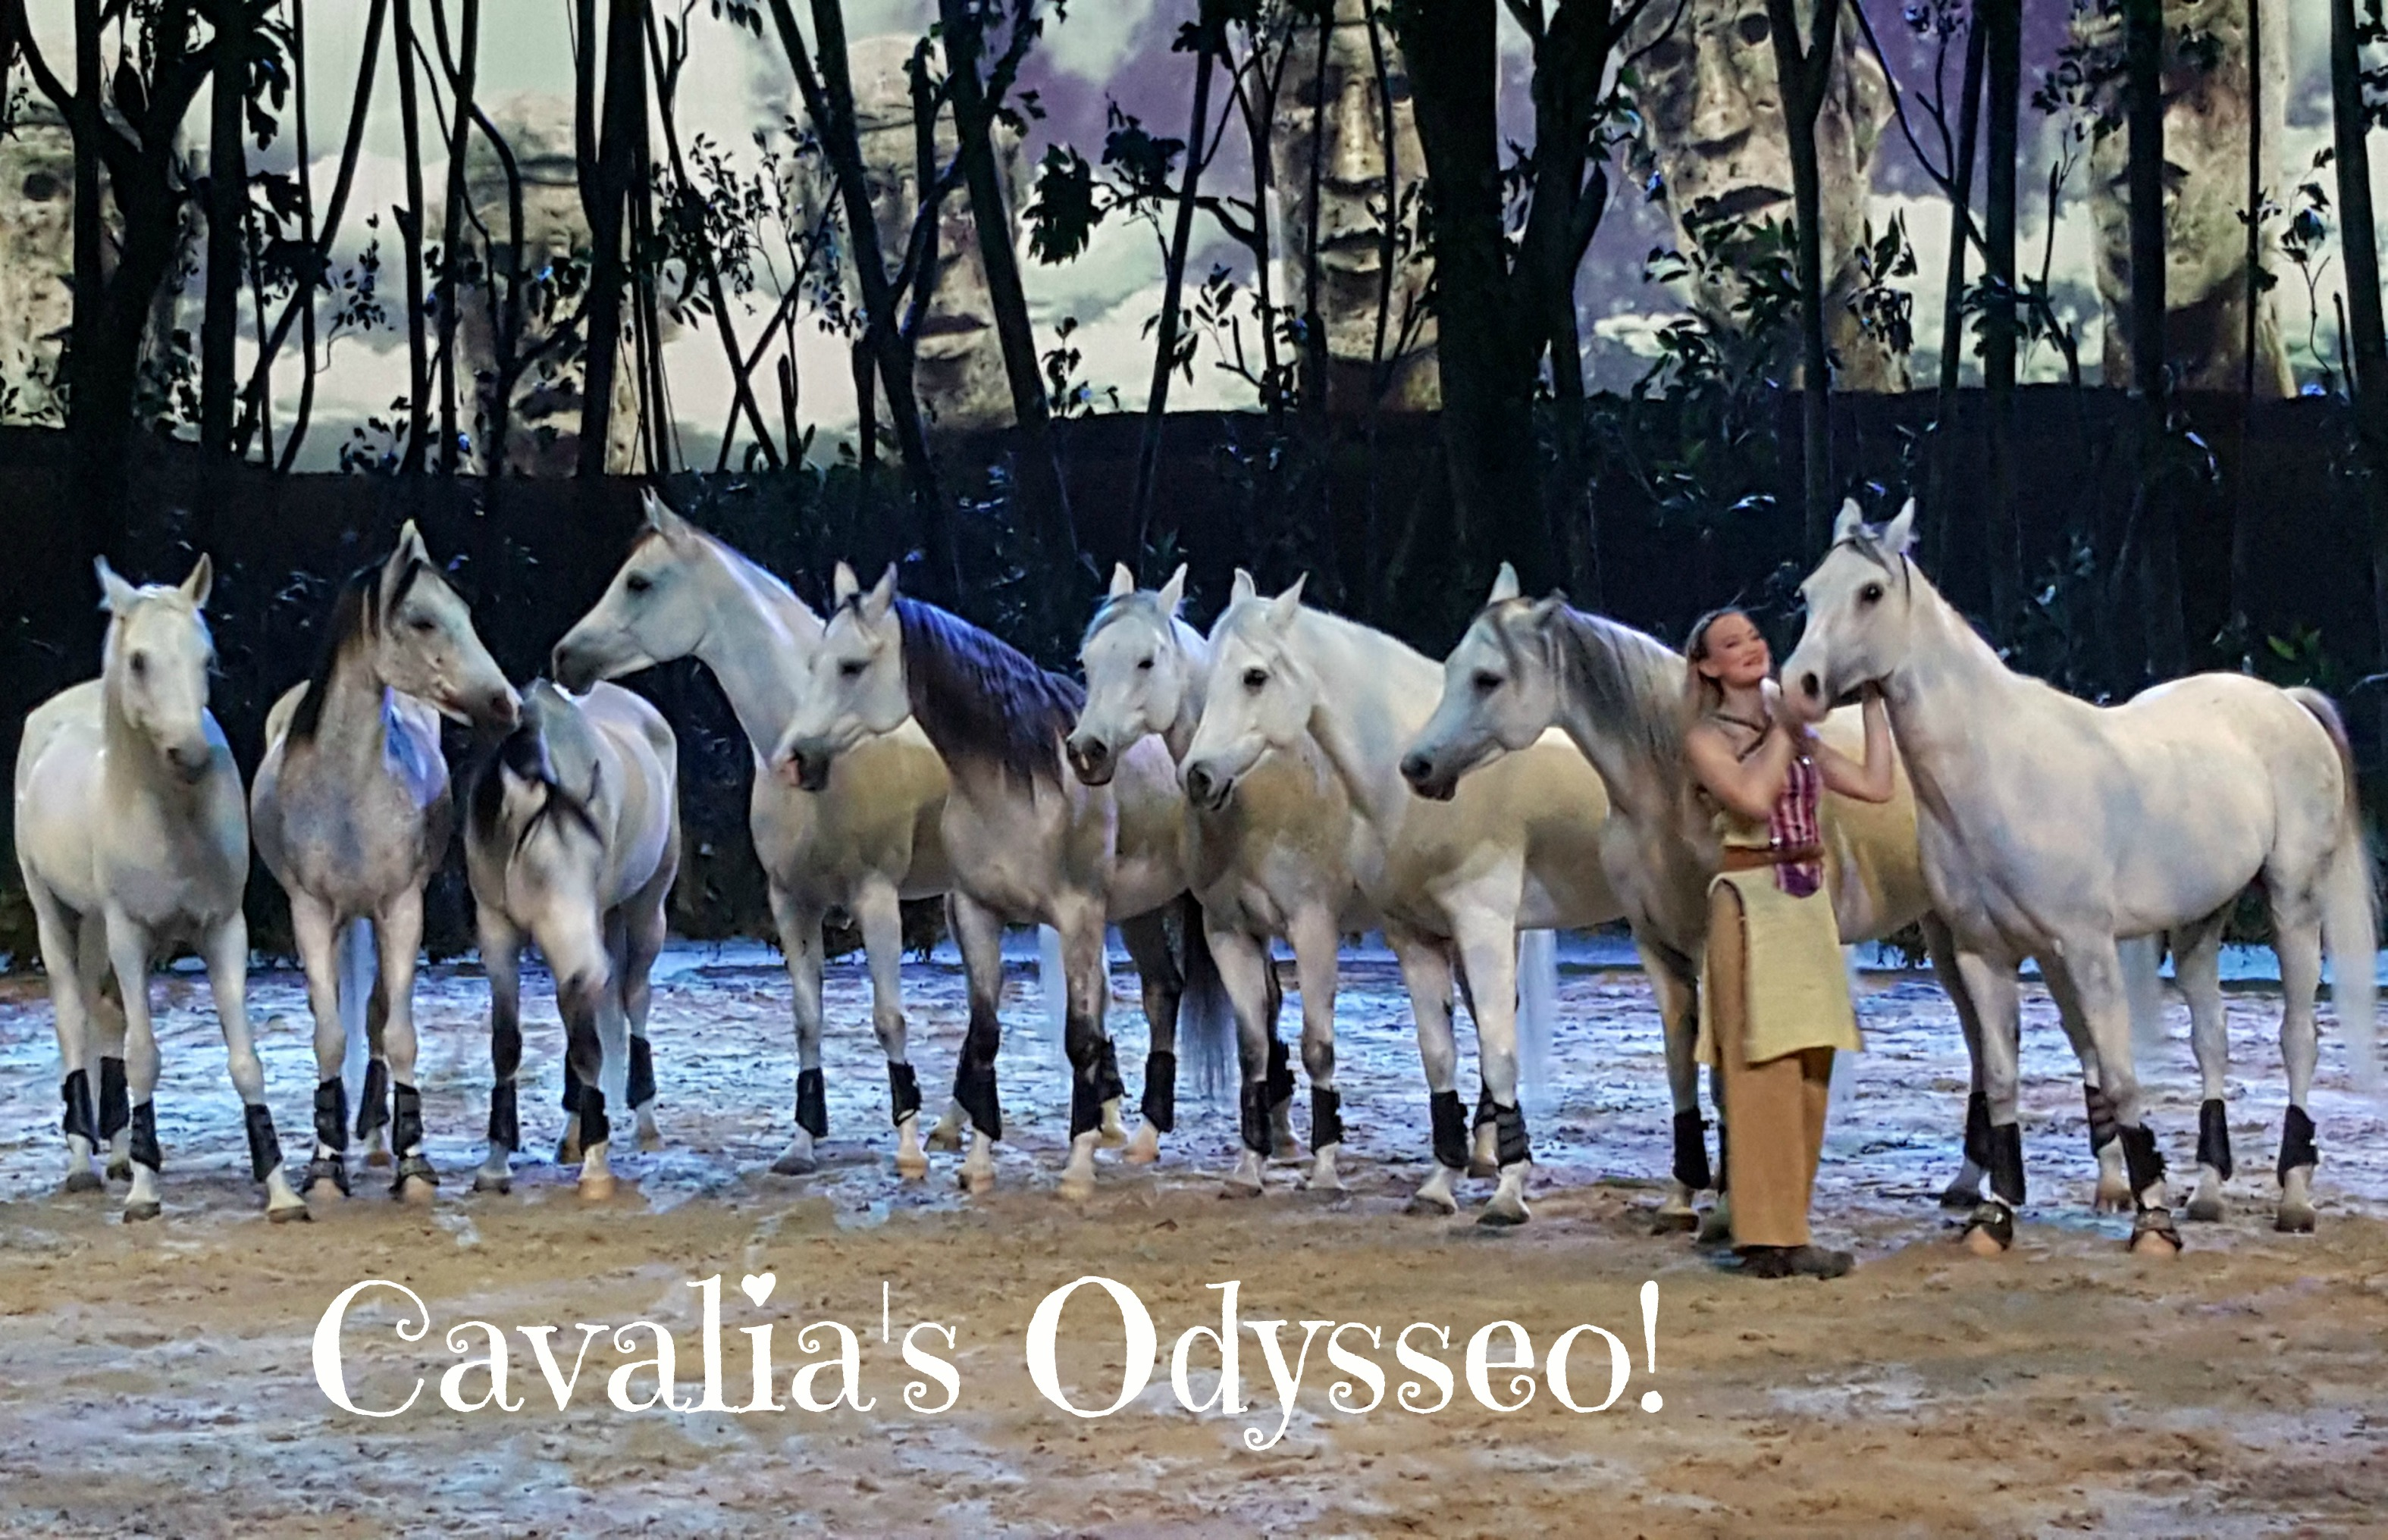 cavalias-odysseo-orange-county-irvine